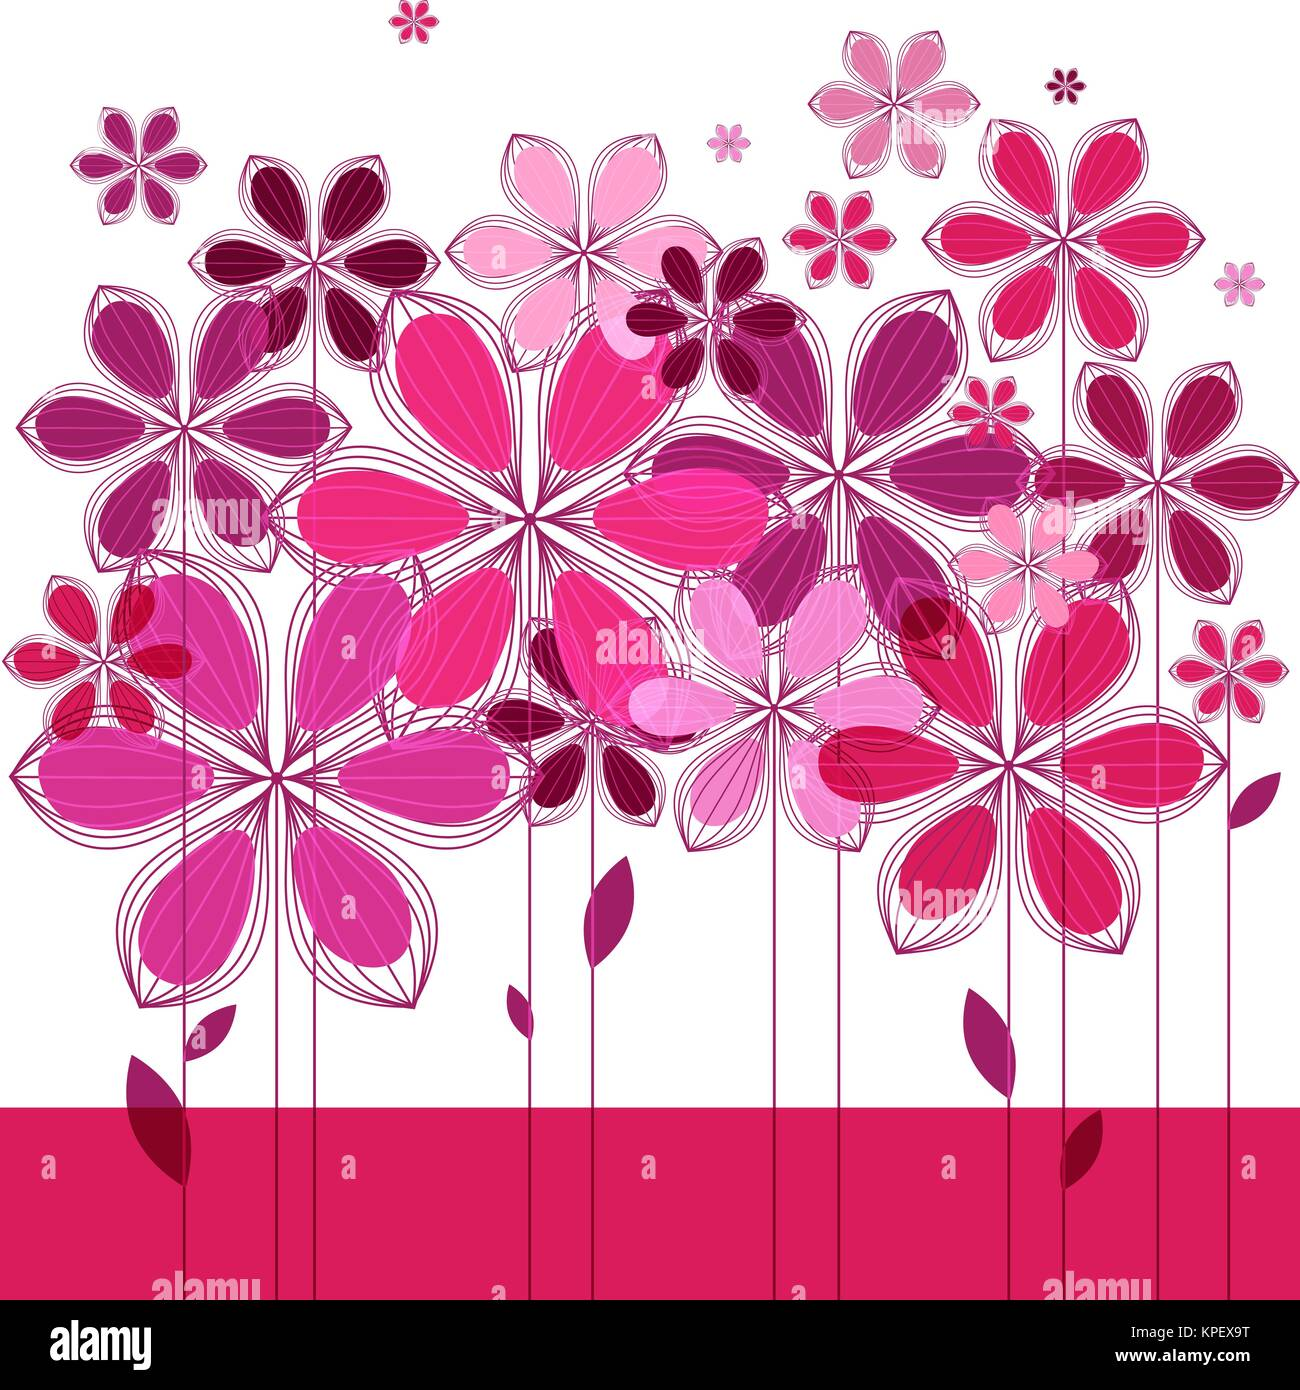 Greeting card, pink floral composition on white background - Stock Image